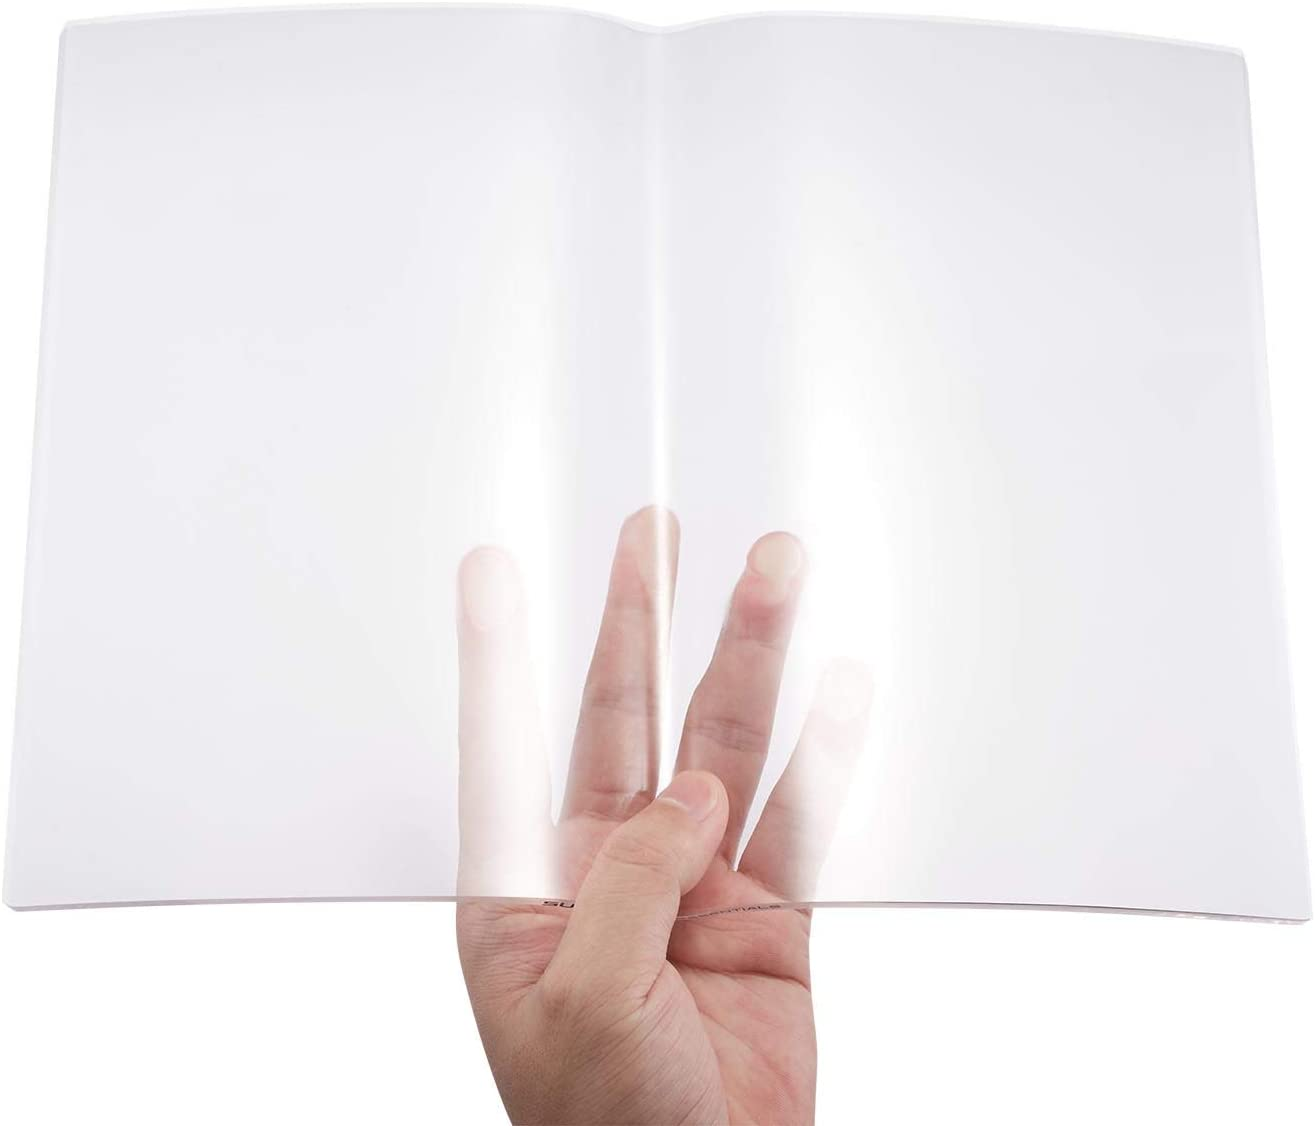 Clear Transparent book Page holder, opener